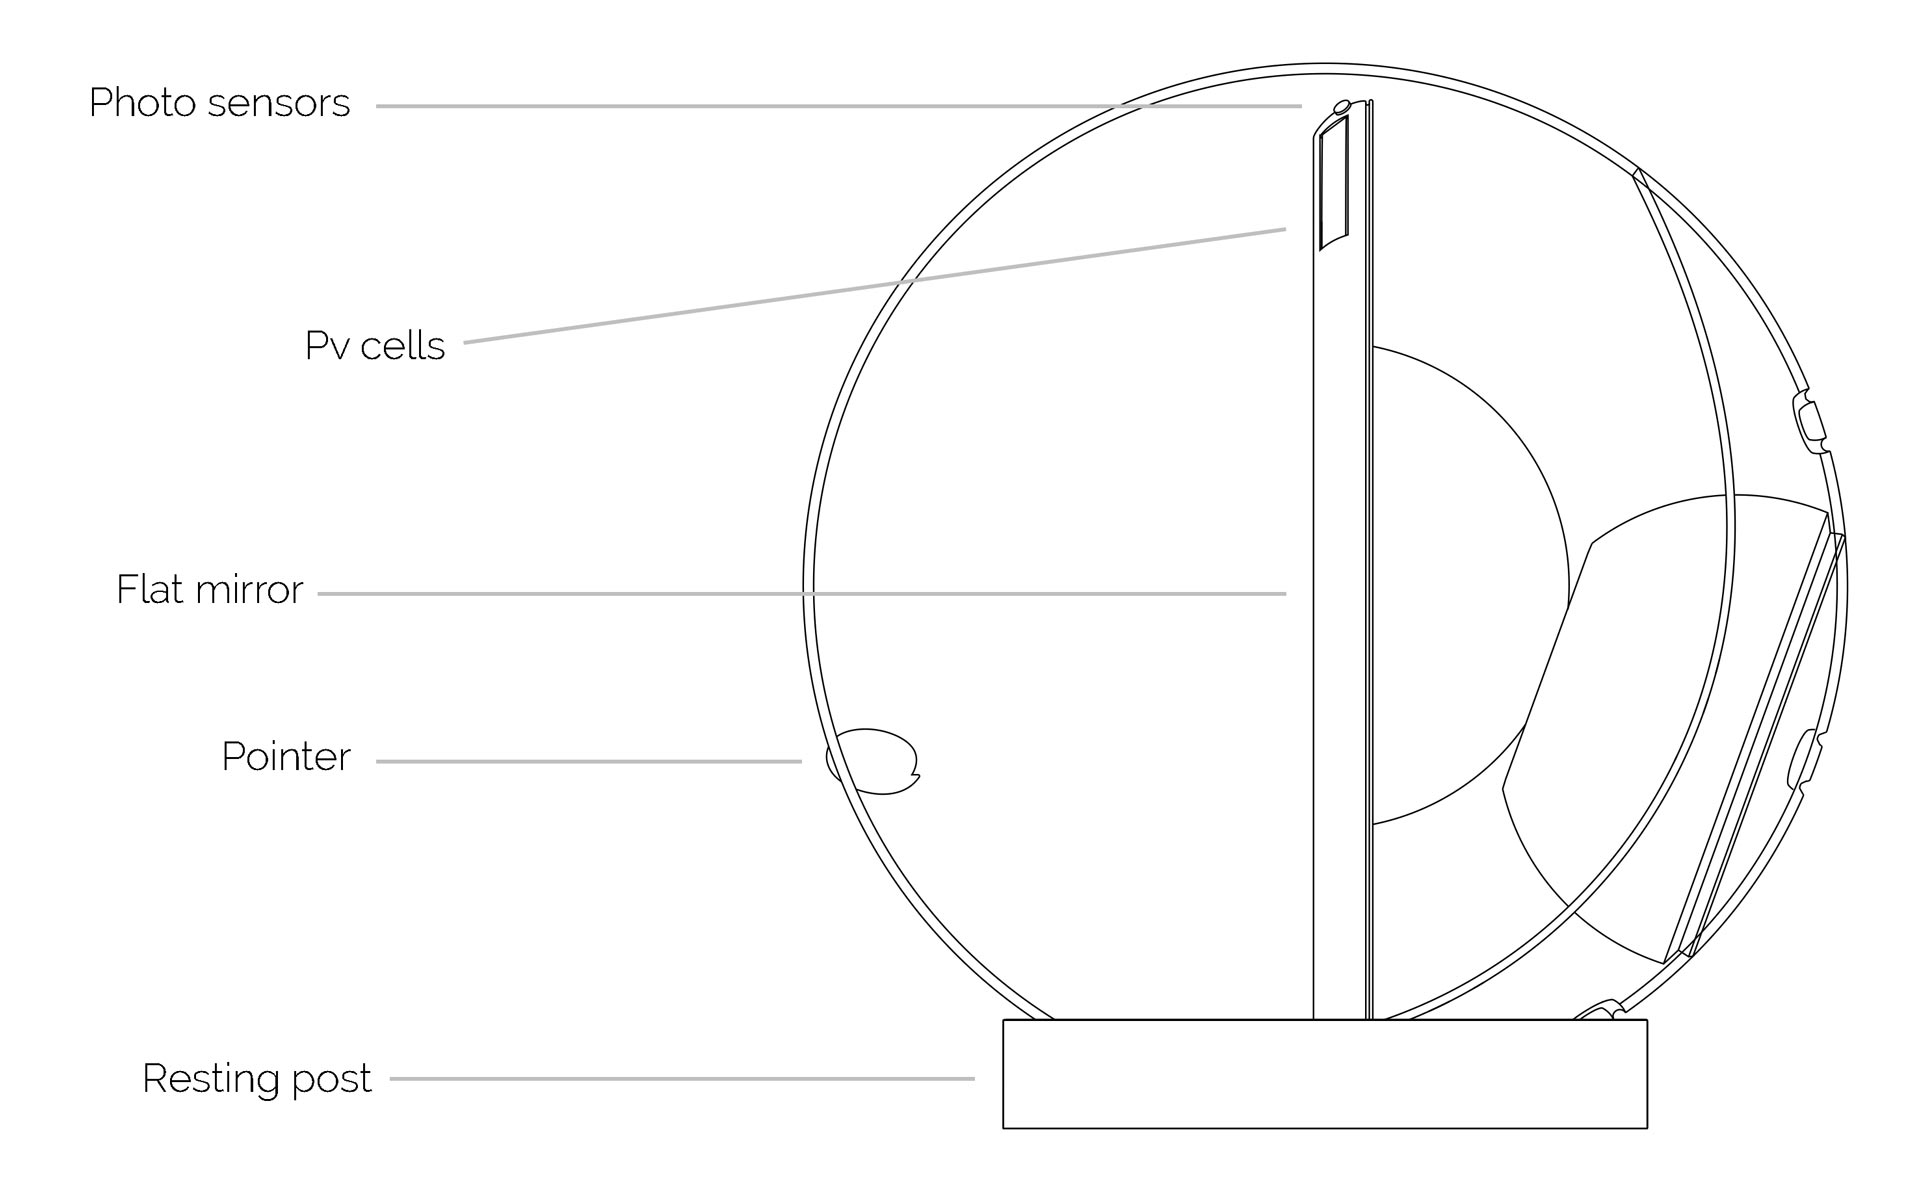 Tech specs for Lucy, the solar-powered sun reflector